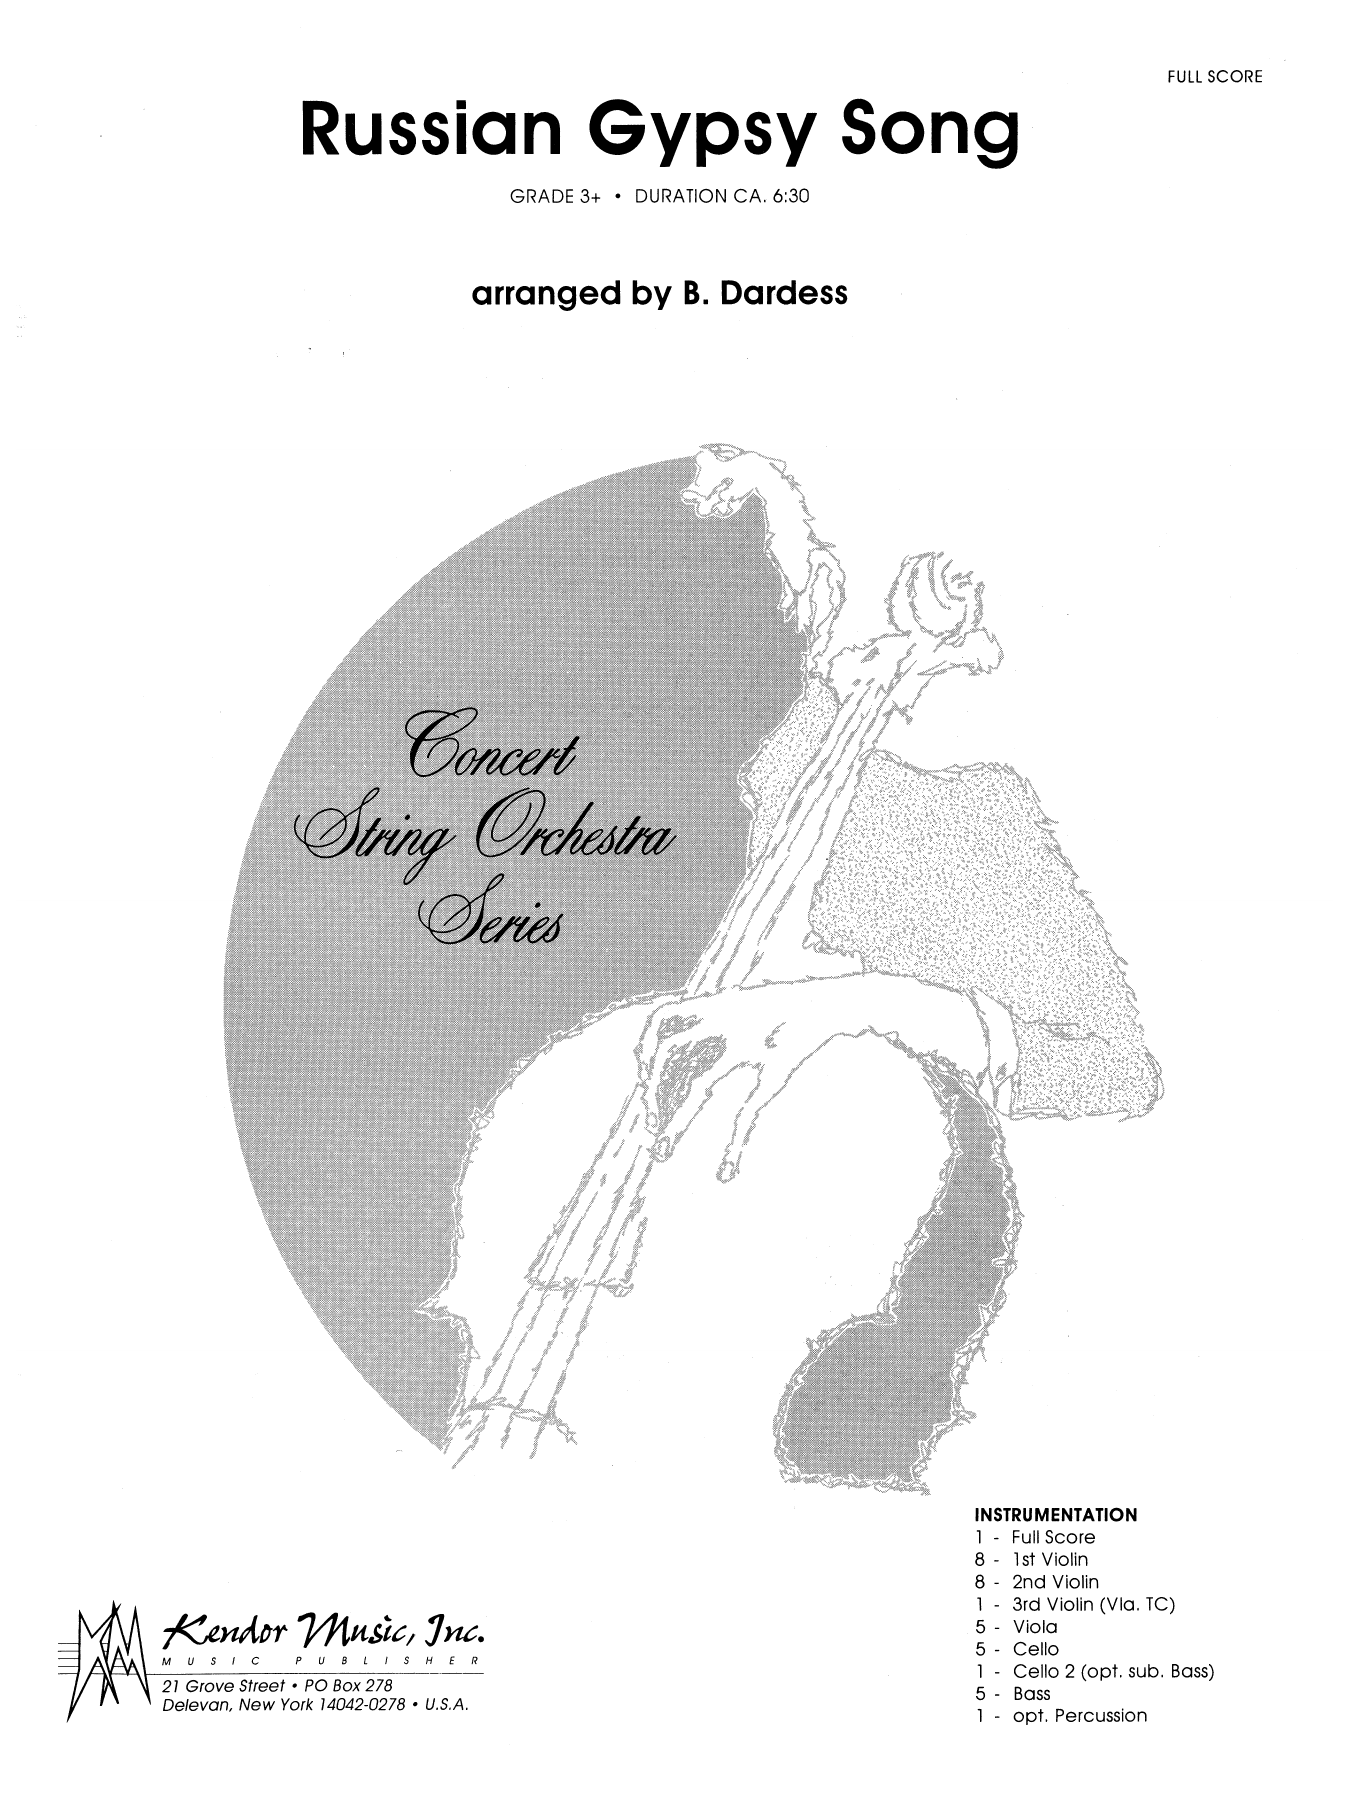 Russian Gypsy Song (COMPLETE) sheet music for orchestra by Betty Dardess. Score Image Preview.